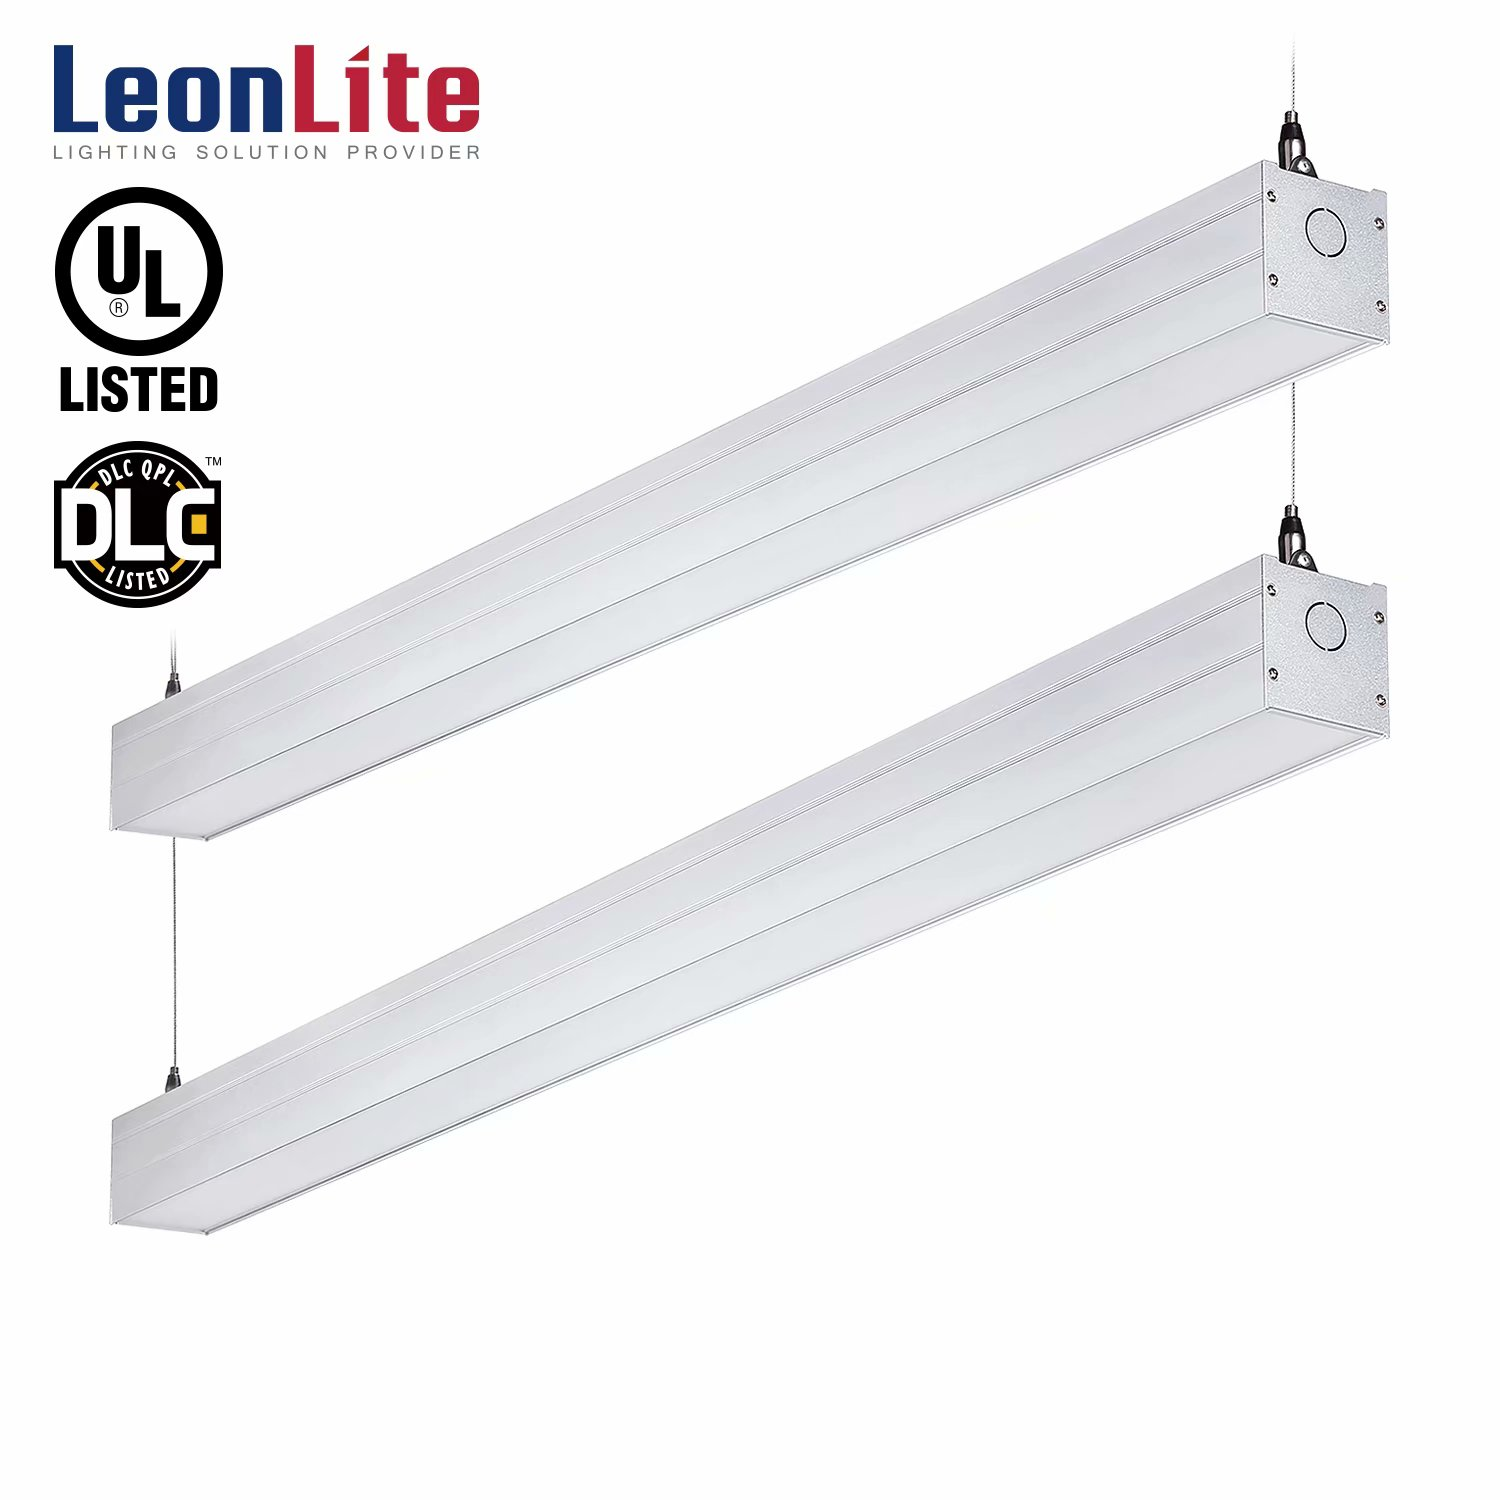 LEONLITE 2 Pack 4ft 40W LED Shop Lights, LED Shop Lights